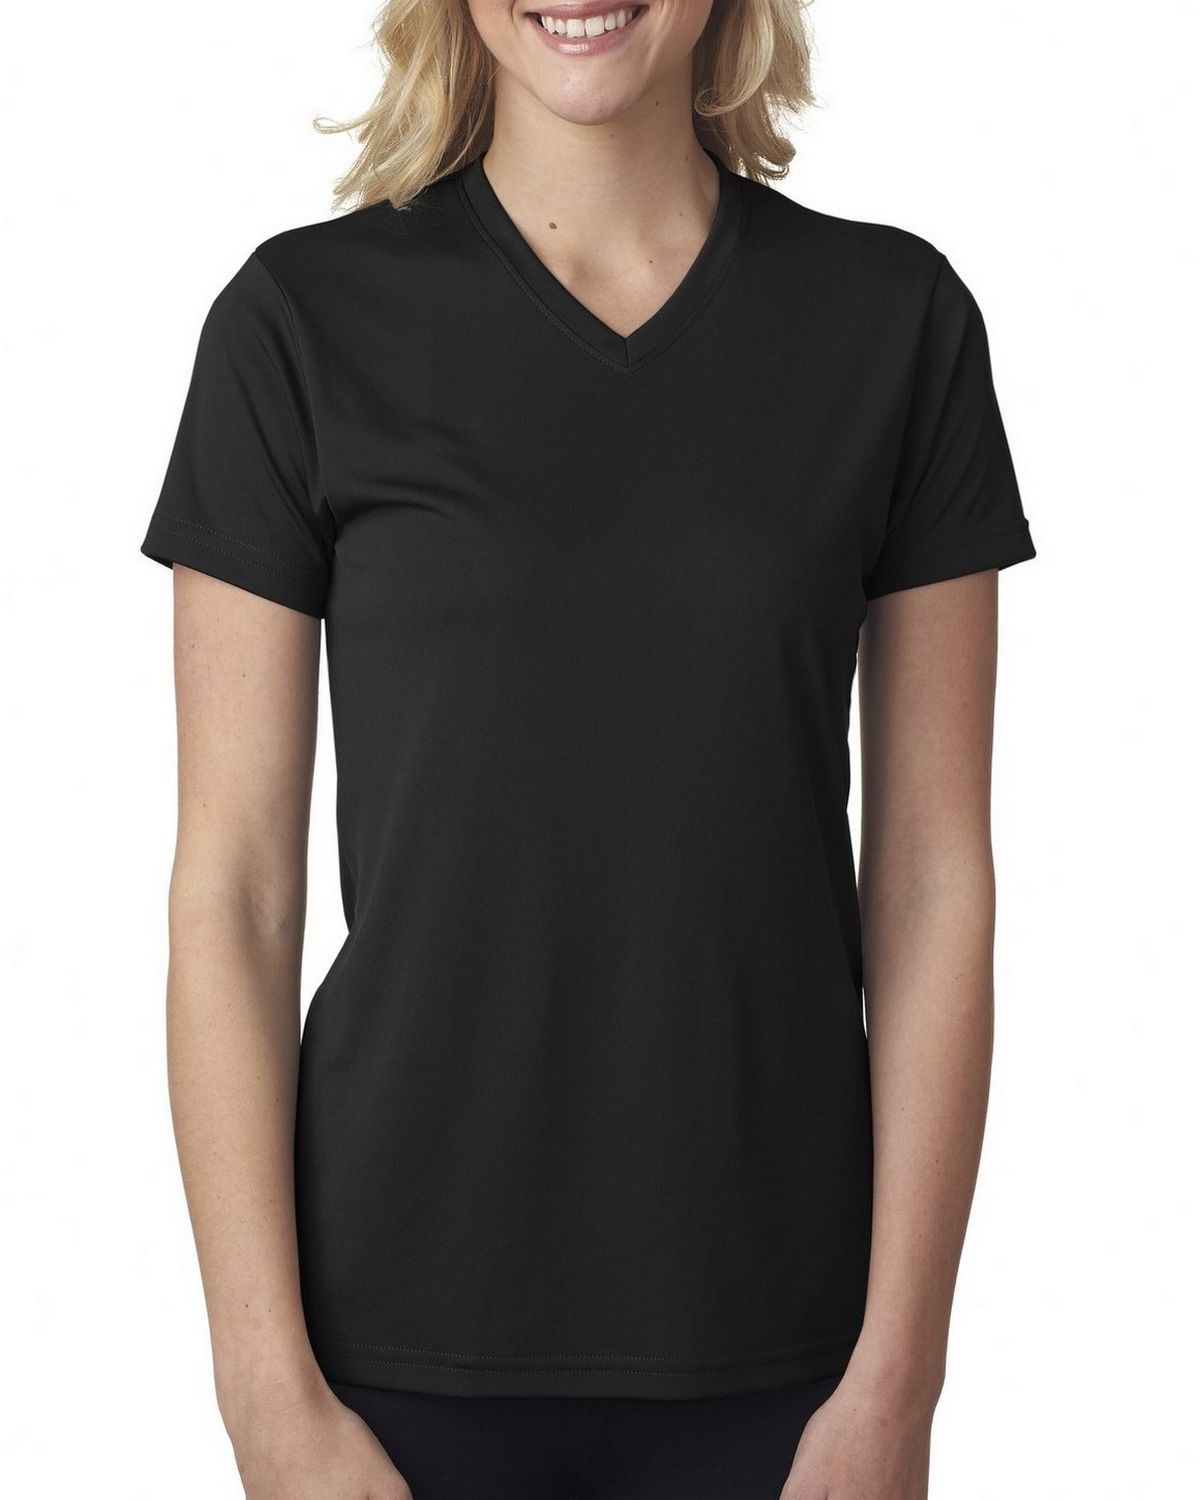 A4 NW3234 Women's Performance Marathon Tee